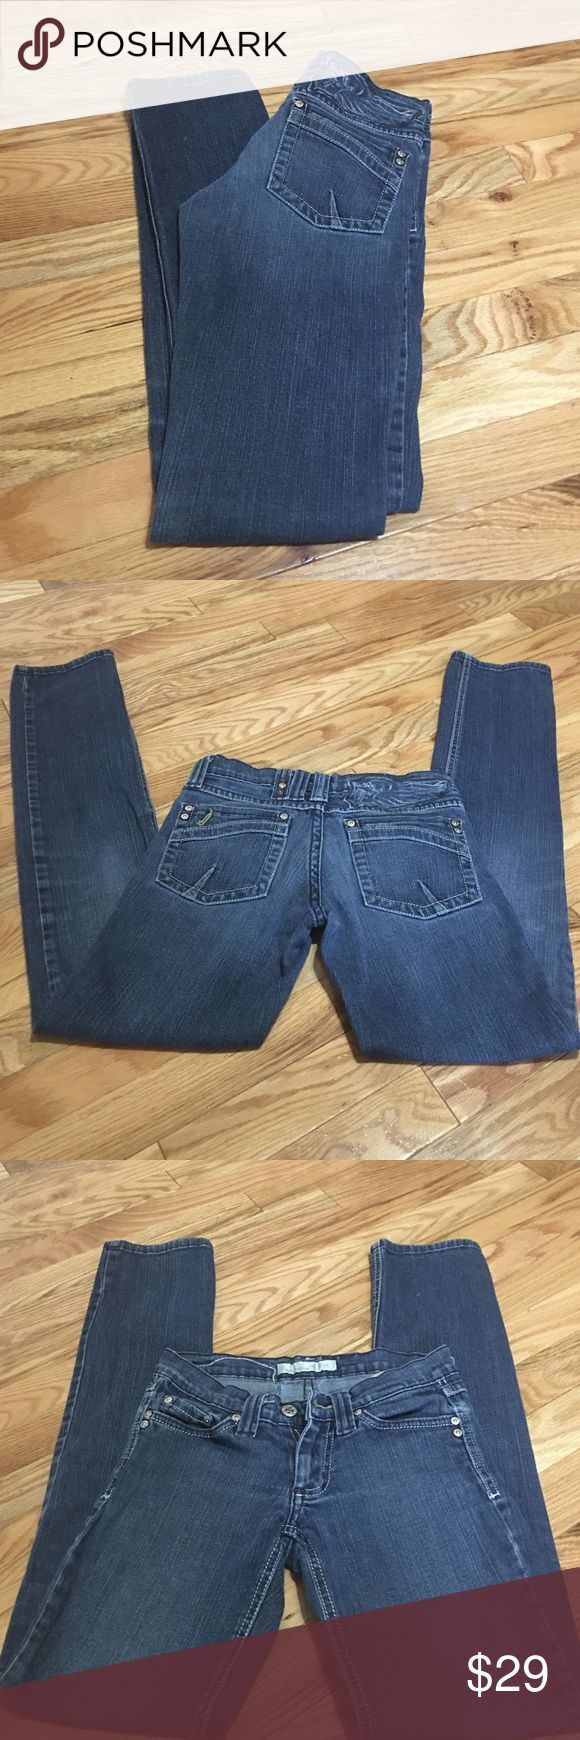 Flying Monkey 🐒 skinny jeans Flying Monkey size 1 inseam 29 skinny jeans perfect condition no rips, stains, holes, or fraying. Style# L1110 cut#131M. 1rst pic for fit only not color of jeans. Jeans are blue jean color. Flying Monkey  Jeans Skinny